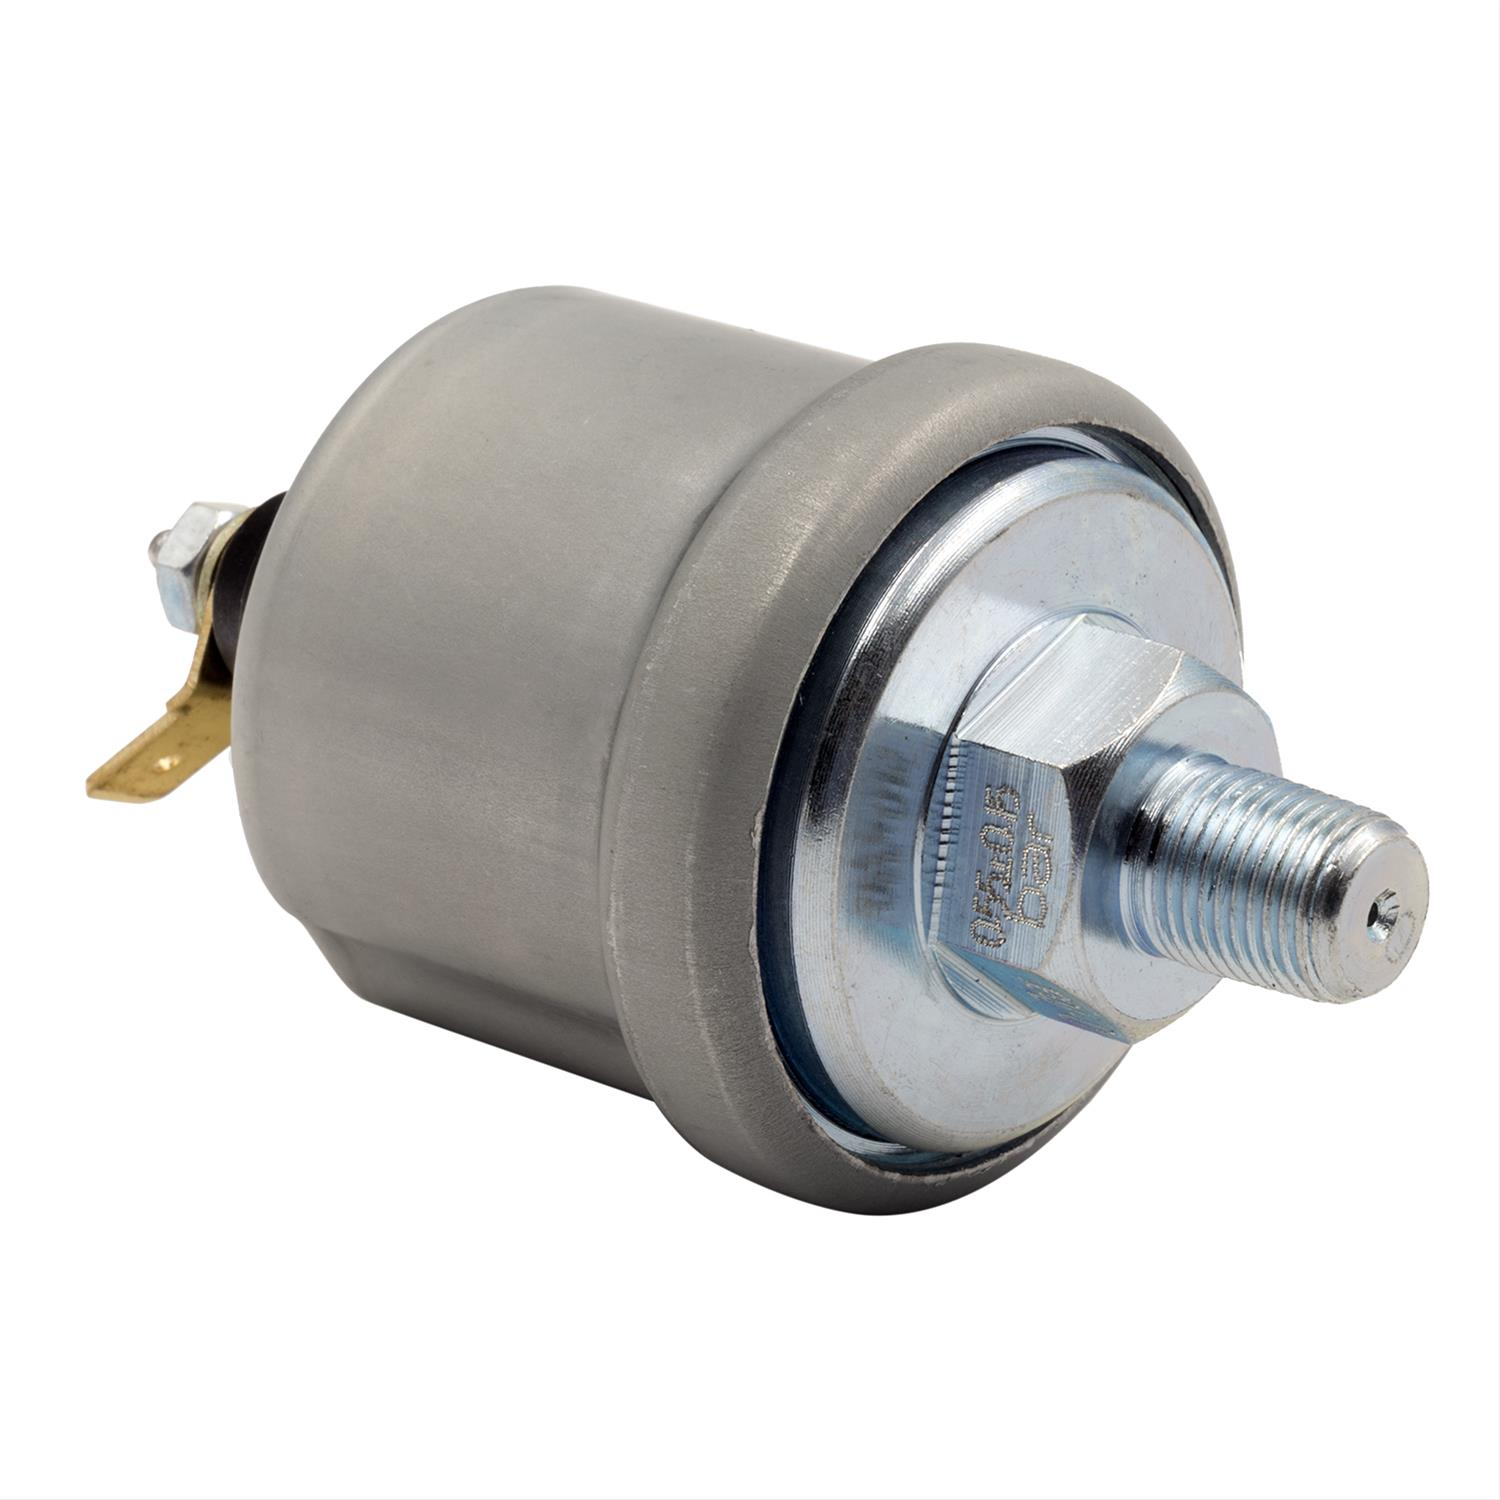 equ-9832_mh_xl Surprising Tvr Griffith Oil Pressure Sender Cars Trend